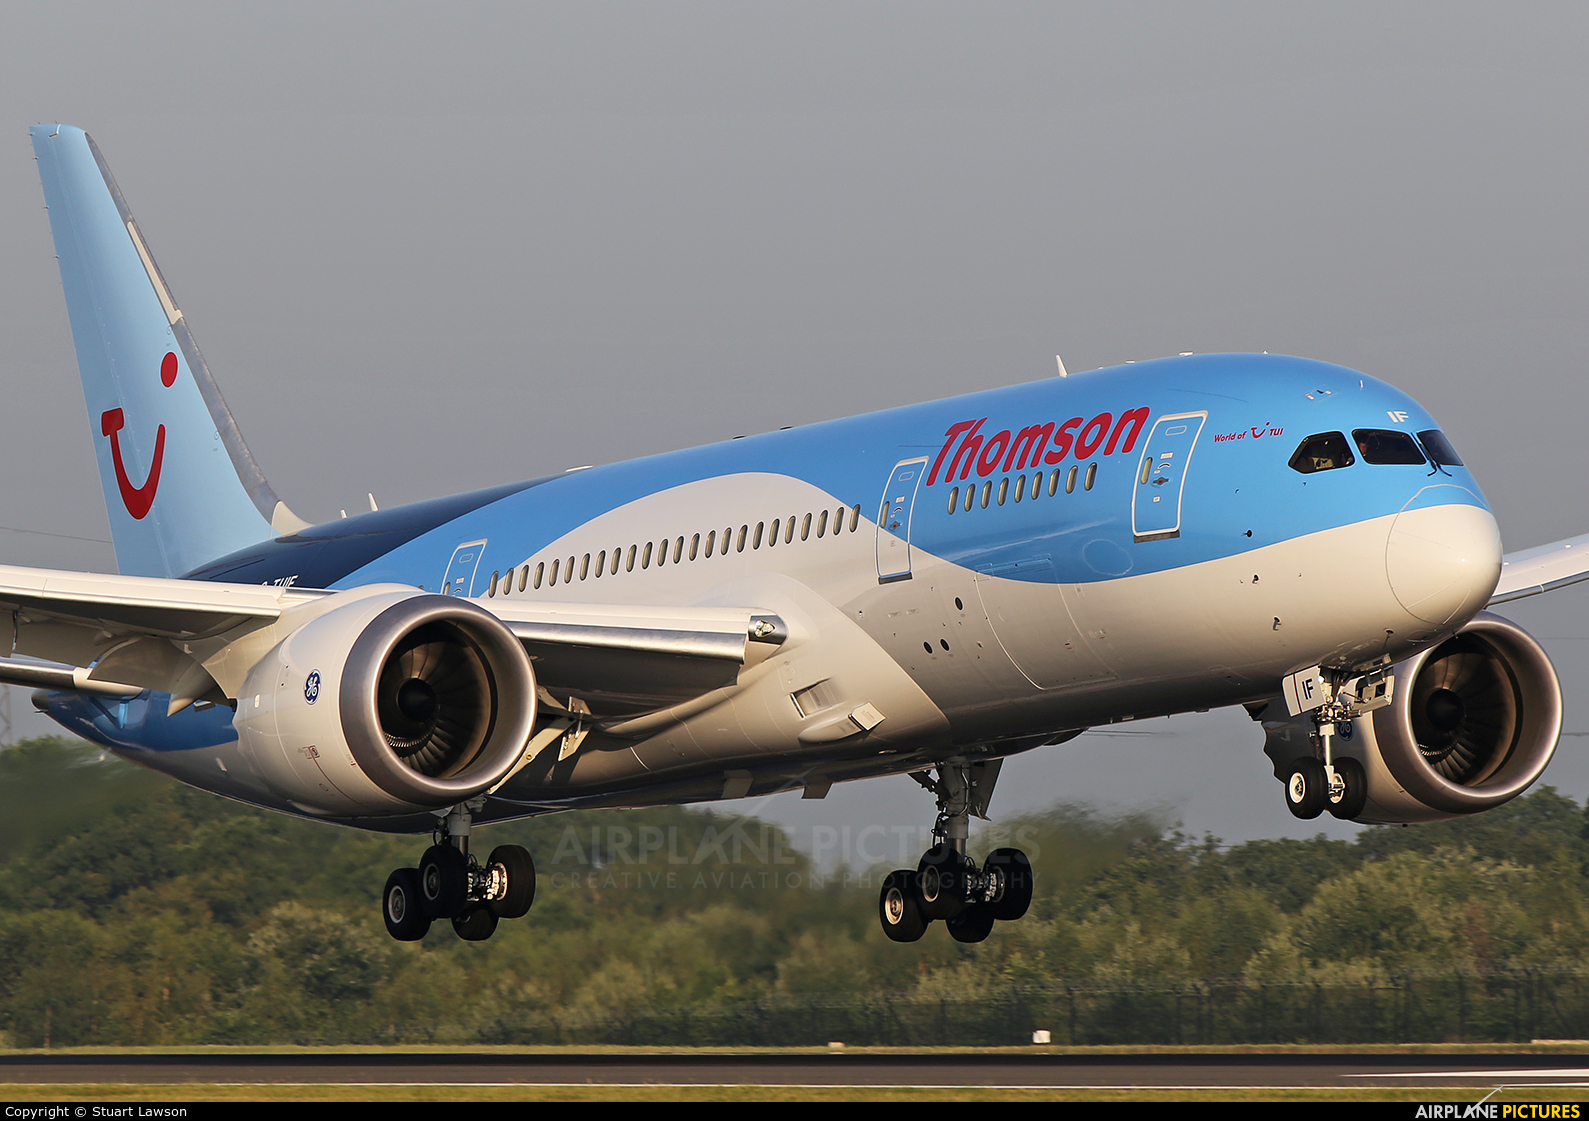 Thomson/Thomsonfly G-TUIF aircraft at Manchester